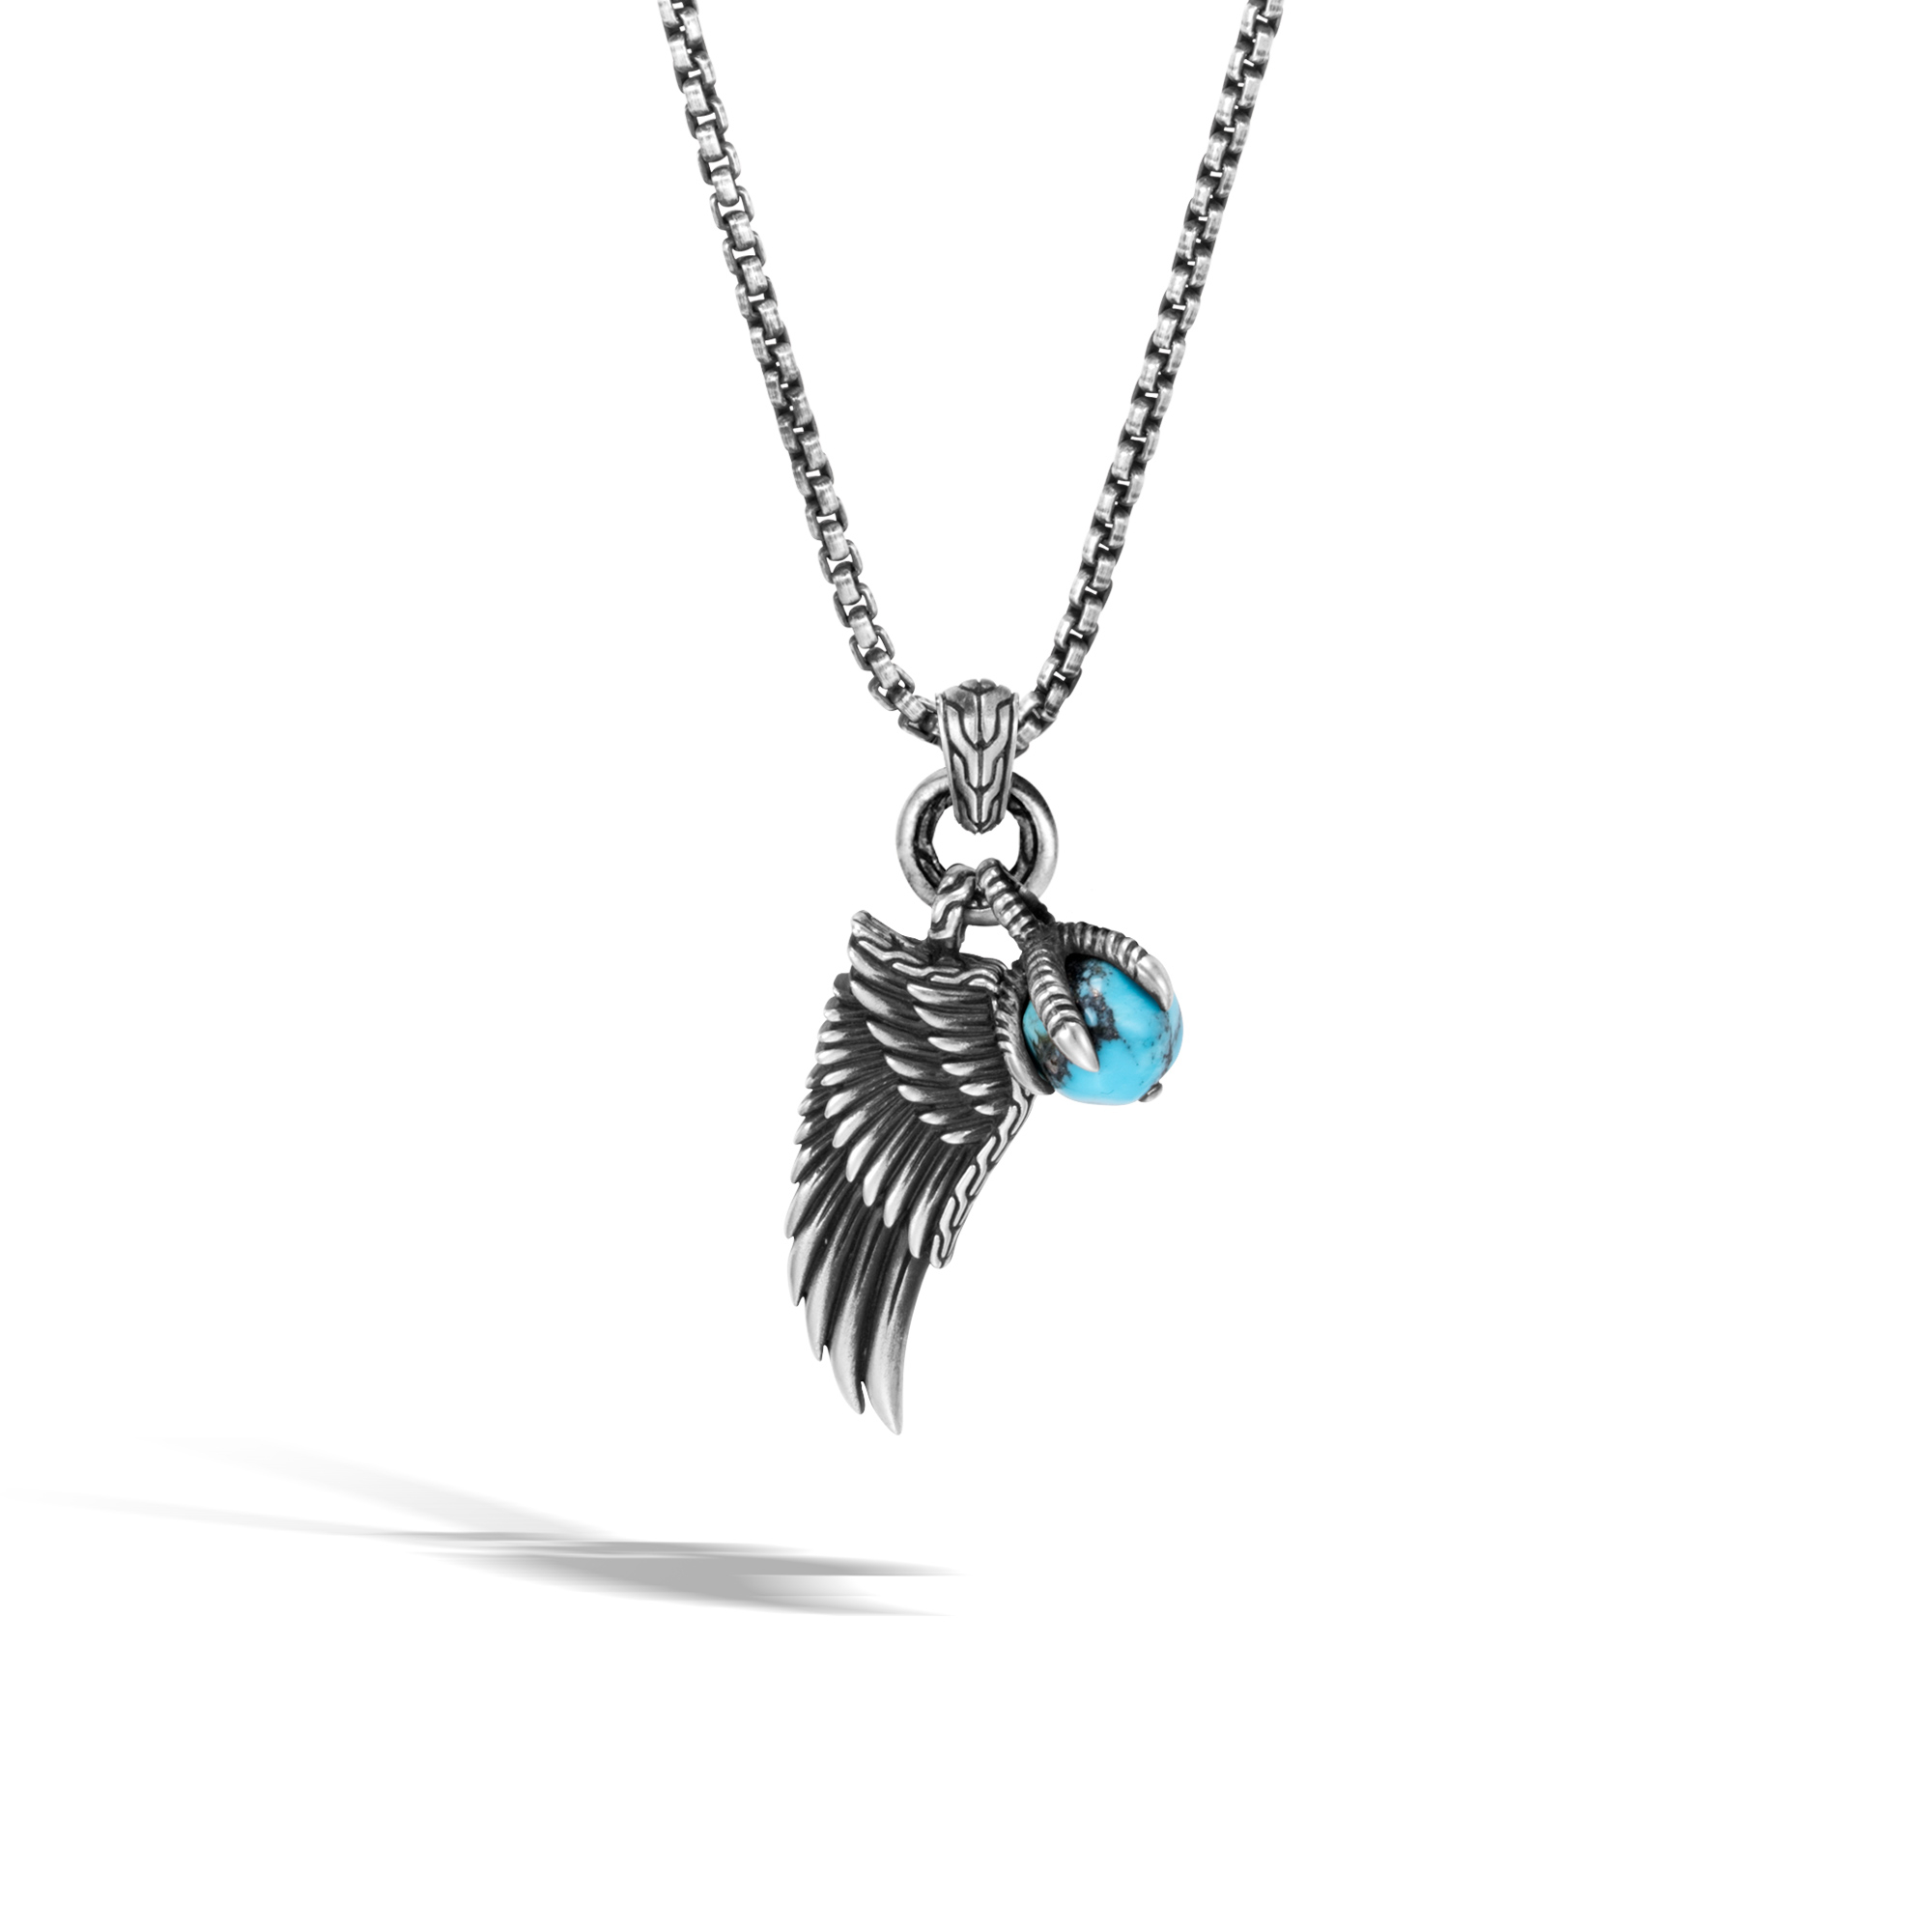 Legends Eagle Wing Pendant Necklace in Silver with Gemstone